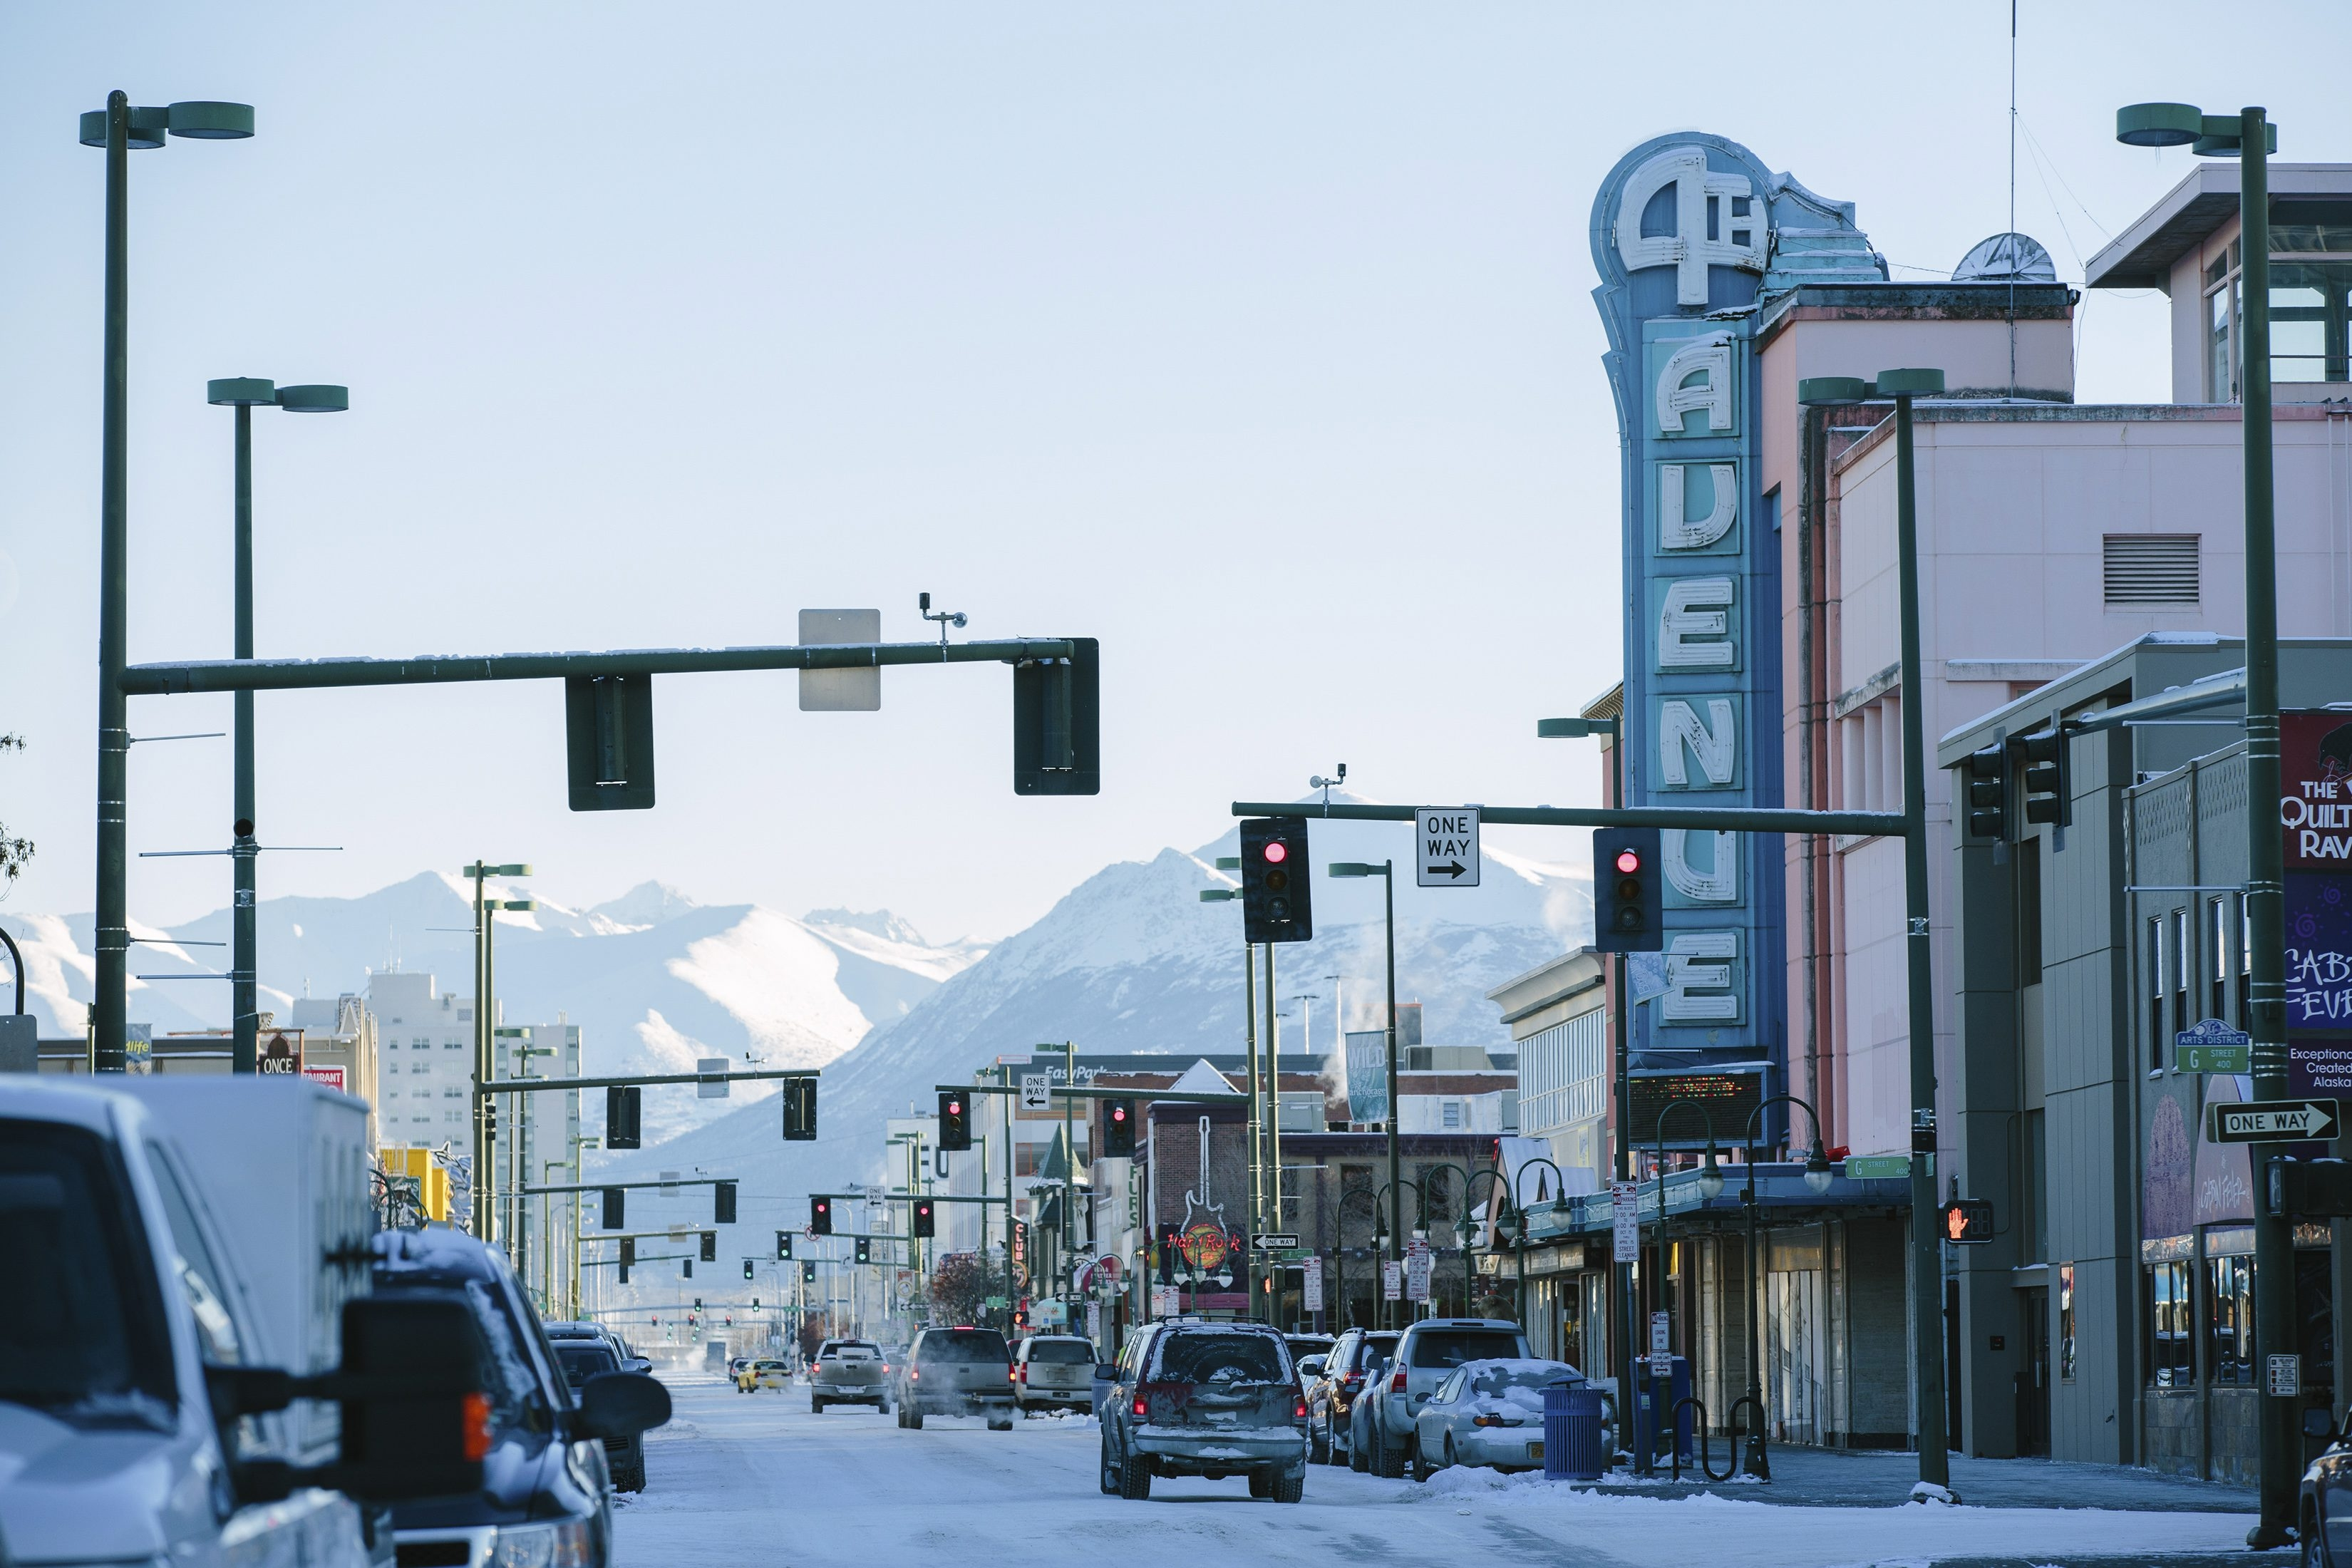 Anchorage, Alaska, is expected to lose jobs in 2016 due to plummeting oil prices. As production continues to decline, state leaders are grappling with how to address a $3.5 billion budget shortfall.